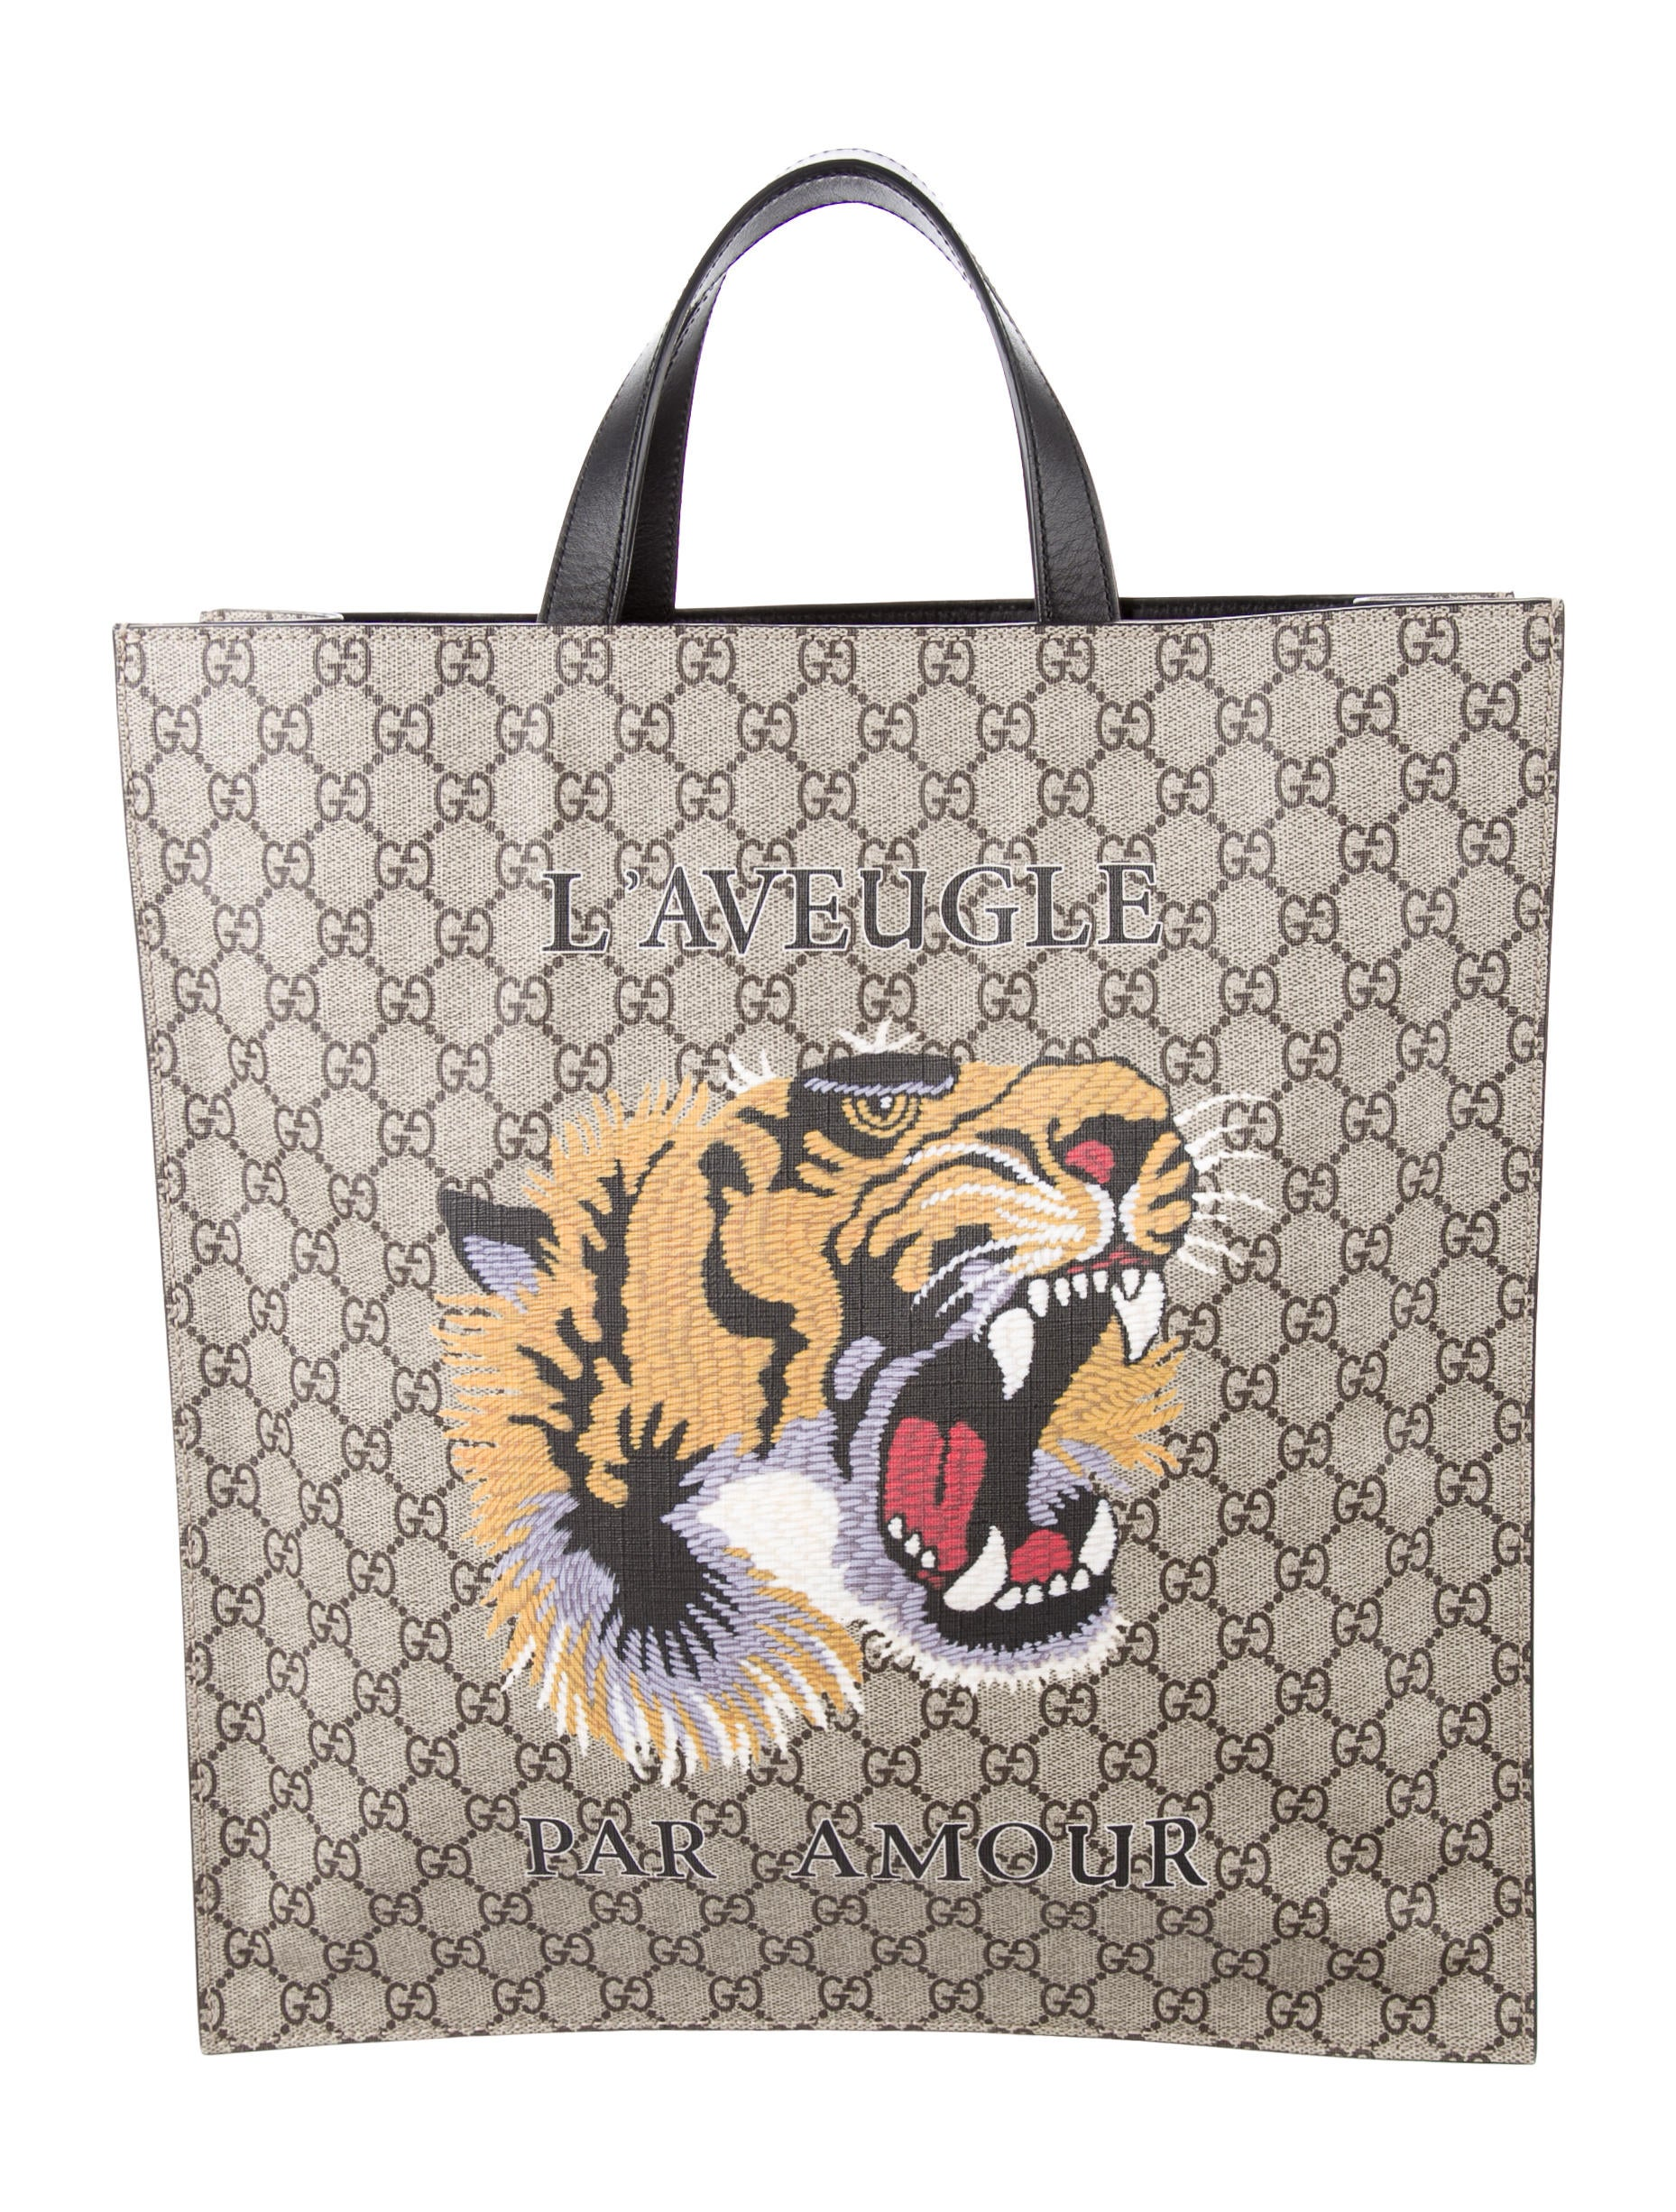 2858439fb930 Gucci Tote With Tiger | Stanford Center for Opportunity Policy in ...